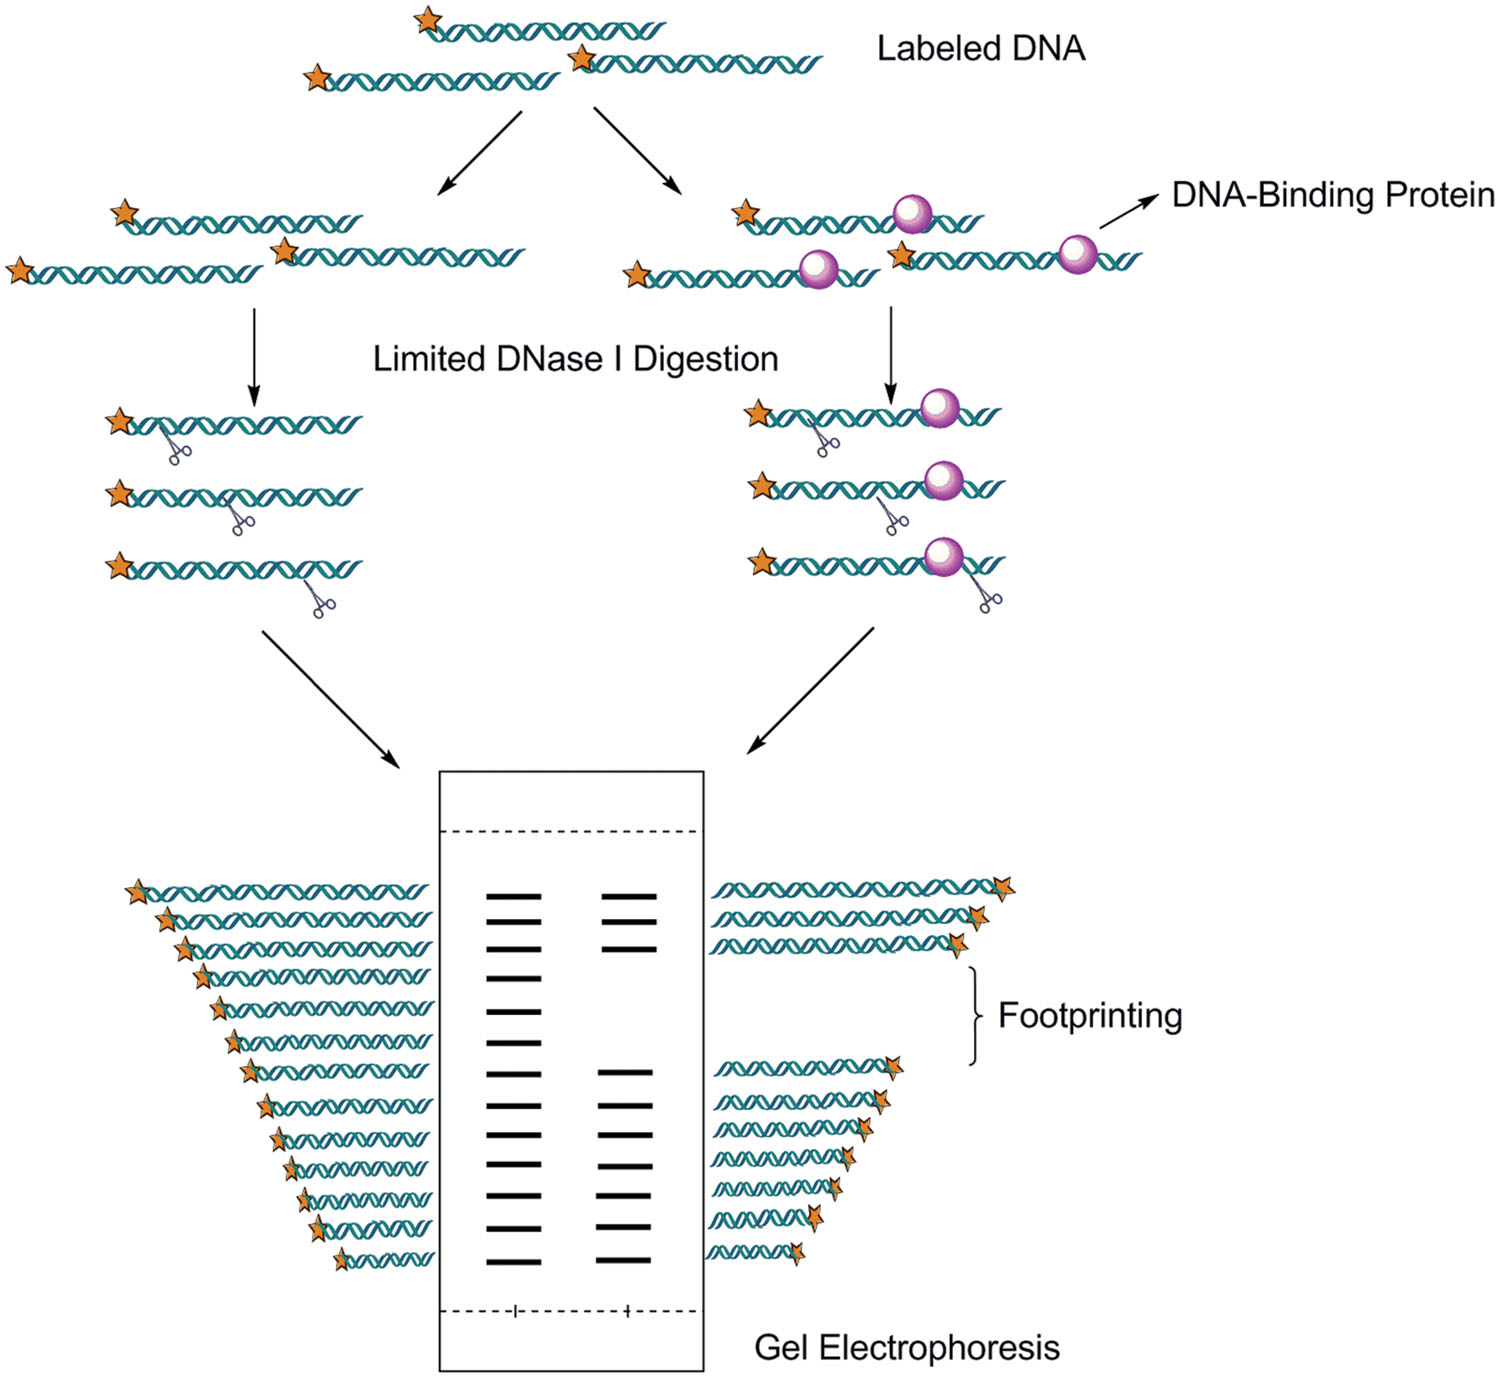 Pathogenesis furthermore Buccal Epithelial Cells furthermore Full as well Case490 likewise Surveyor nuclease assay. on dna digestion